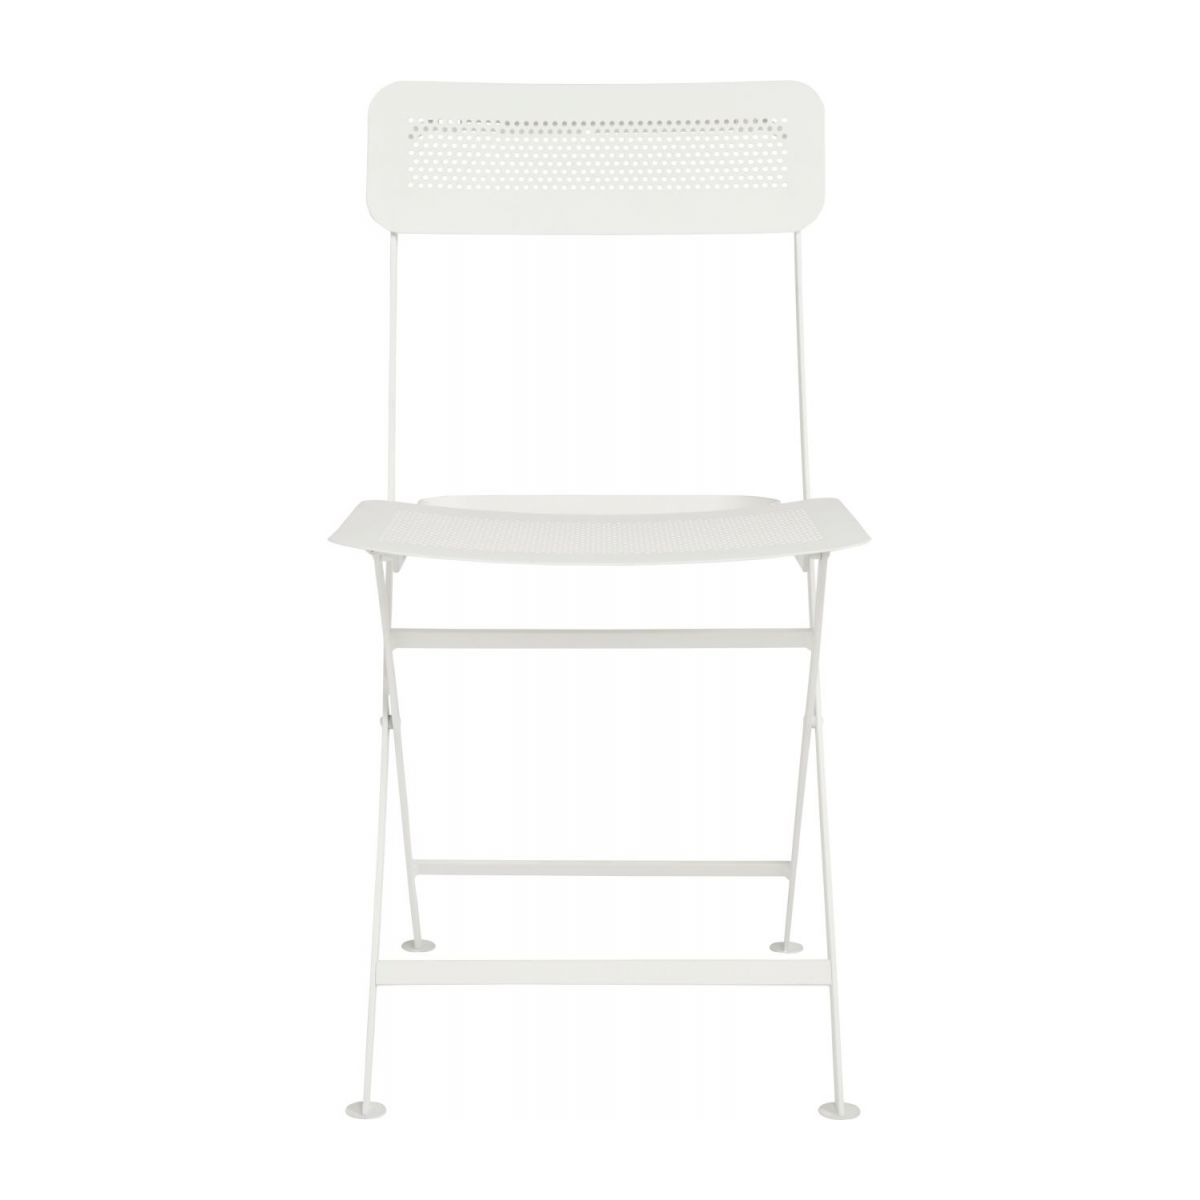 Folding chair made of metal, white n°3